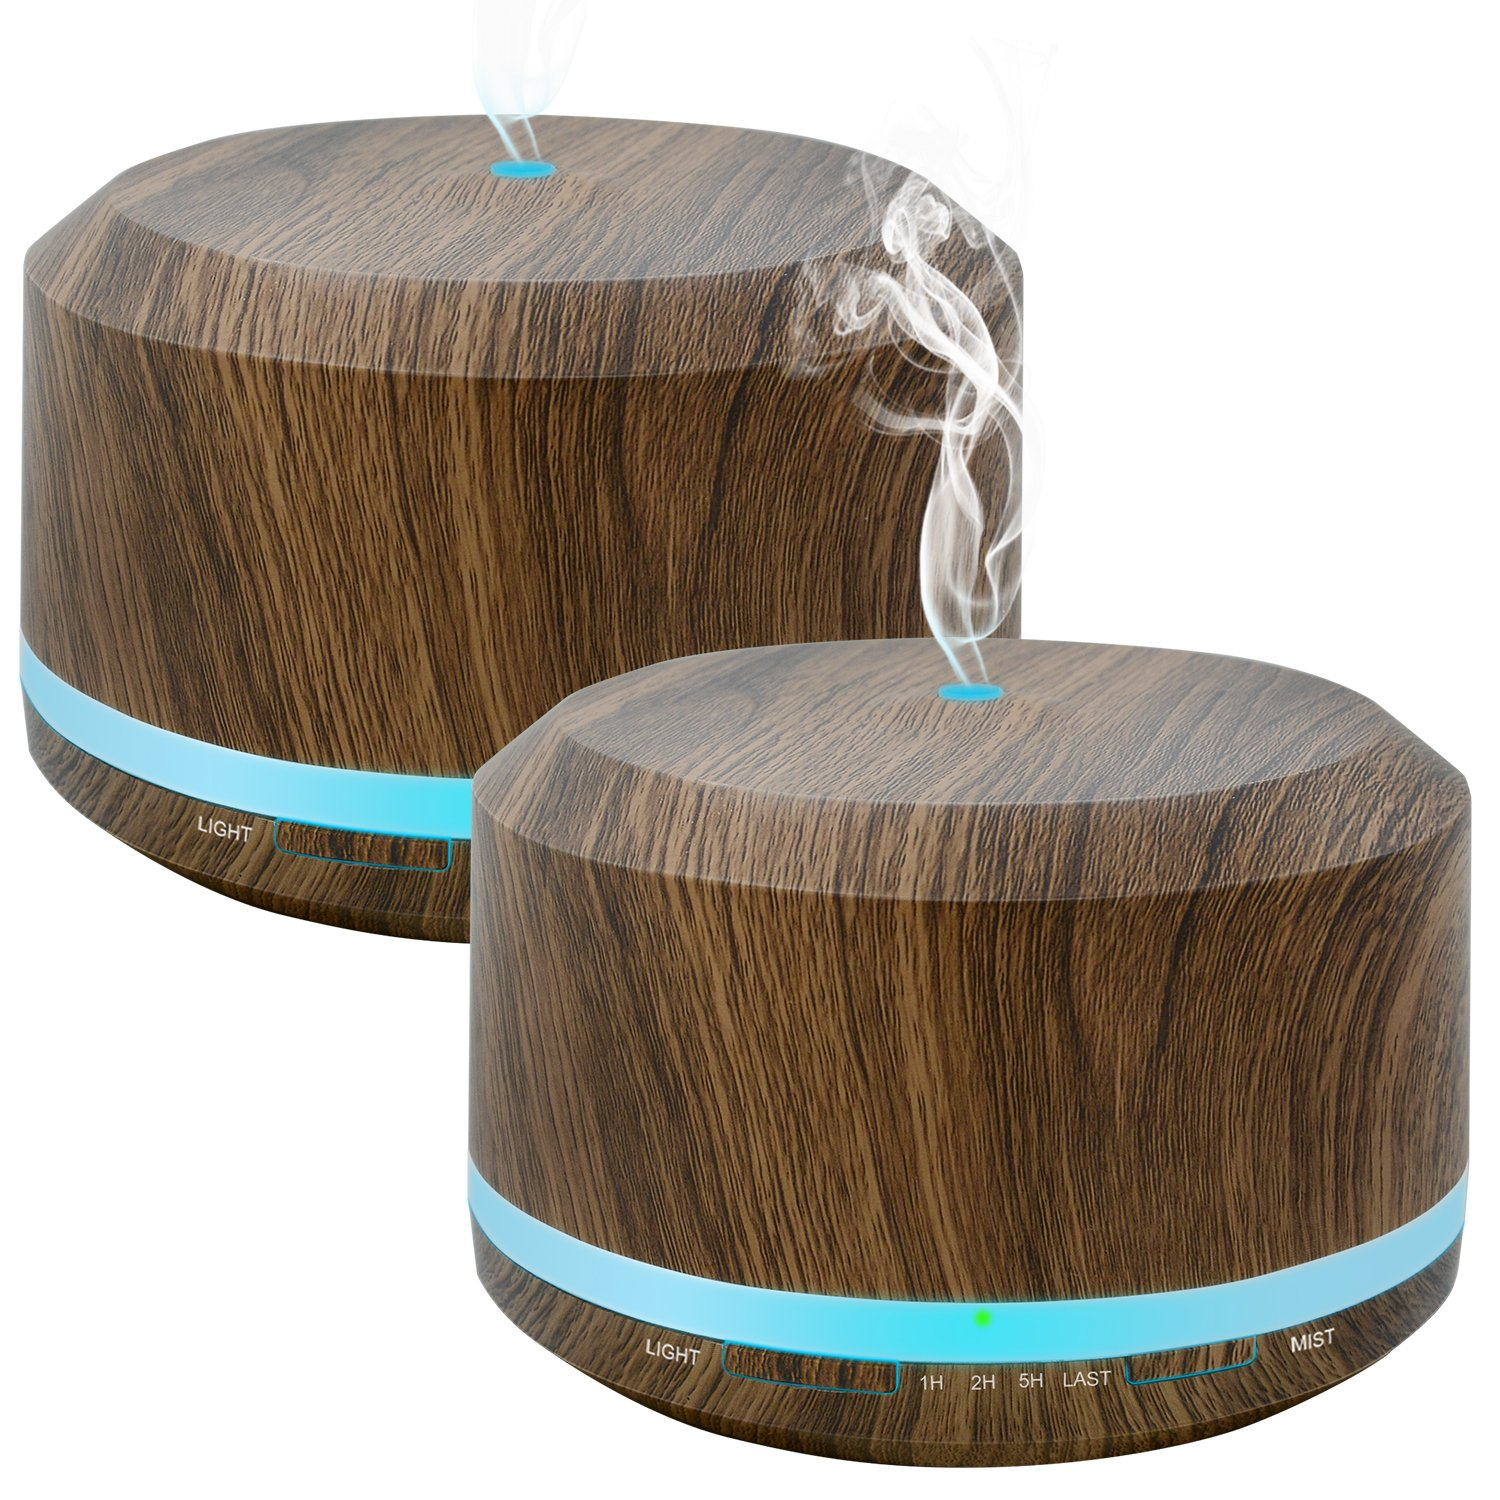 450ml Diffusers for Essential Oils 2 Pack, Wood Grain Aromatherapy Cool Mist Air Humidifier Diffuser with 8 Color Changing Lights for Home Bedroom Office by Doukedge